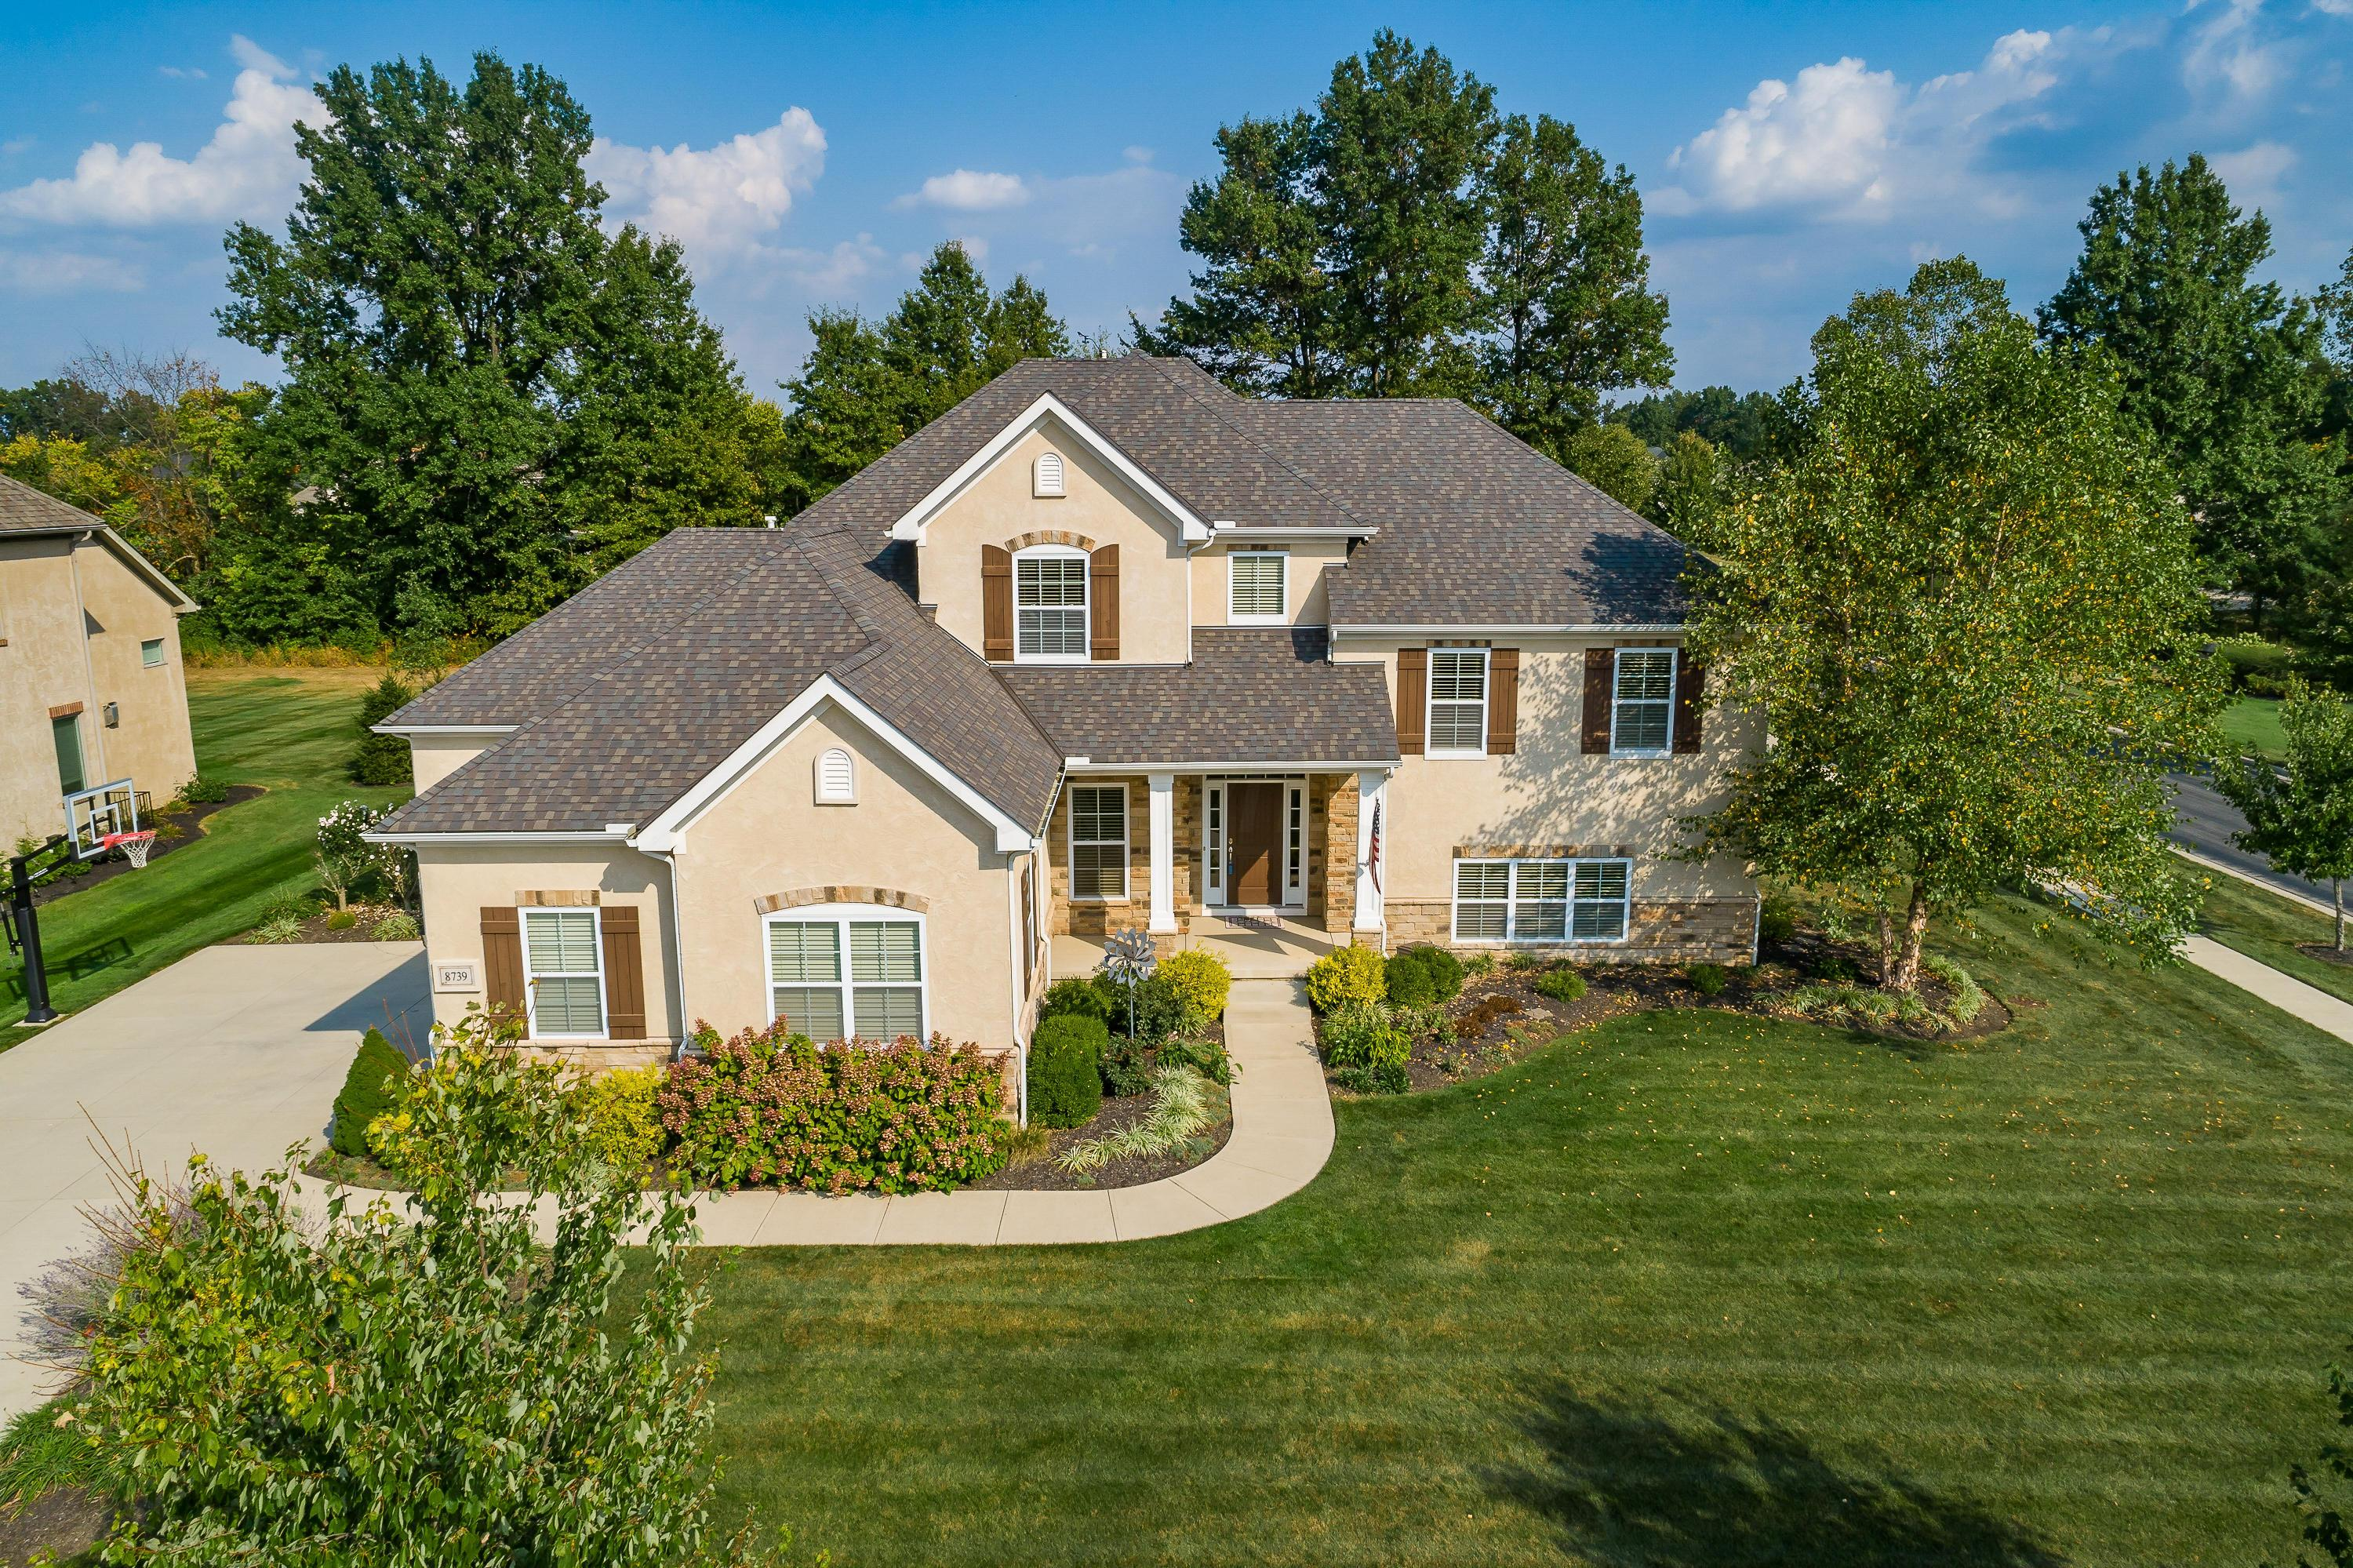 Photo of 8739 Shaffer Drive, Powell, OH 43065